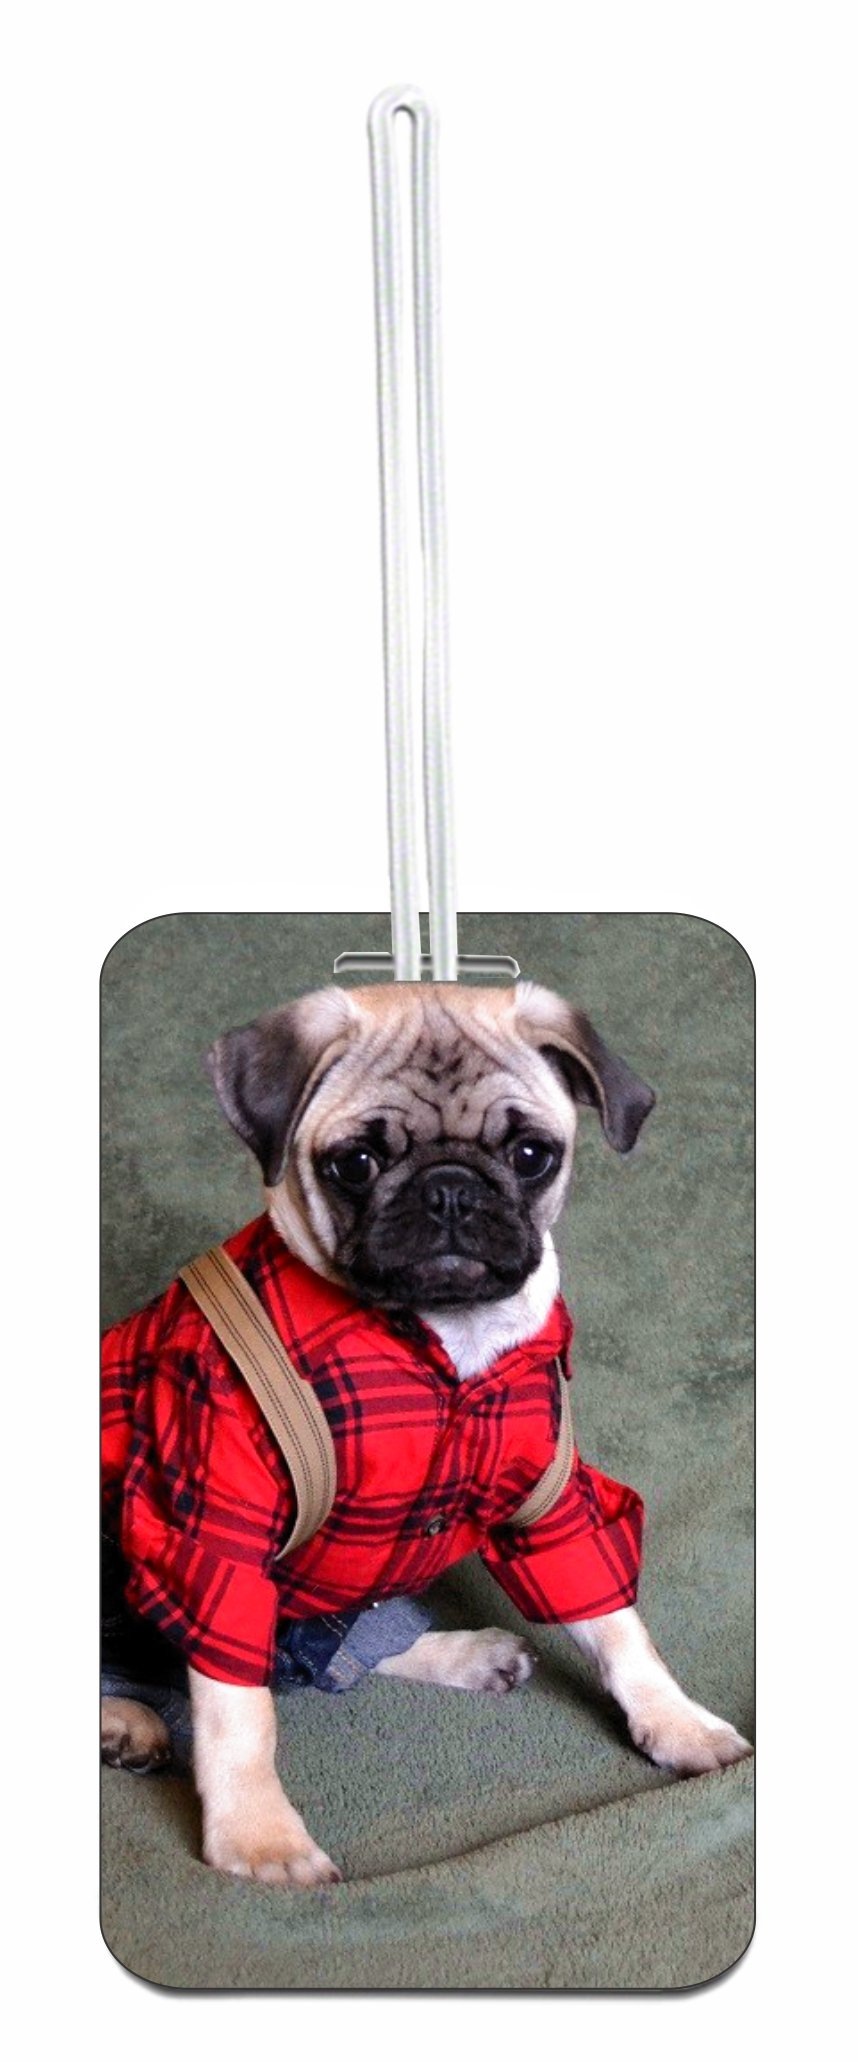 Pug in Clothes Hard Plastic Luggage Tag with Personalized Back